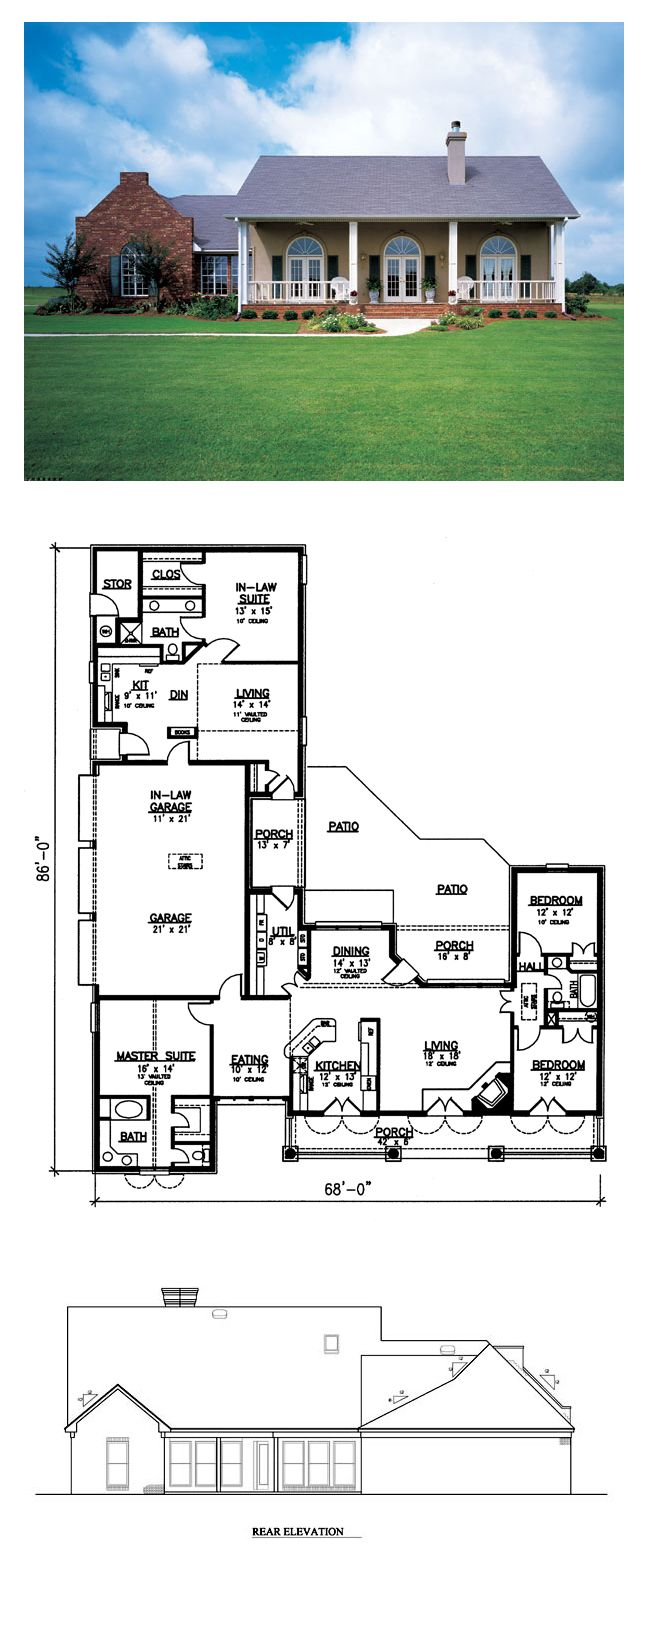 16 best european french house plans images on pinterest cool european style cool house plan id chp 33848 total living area 2400